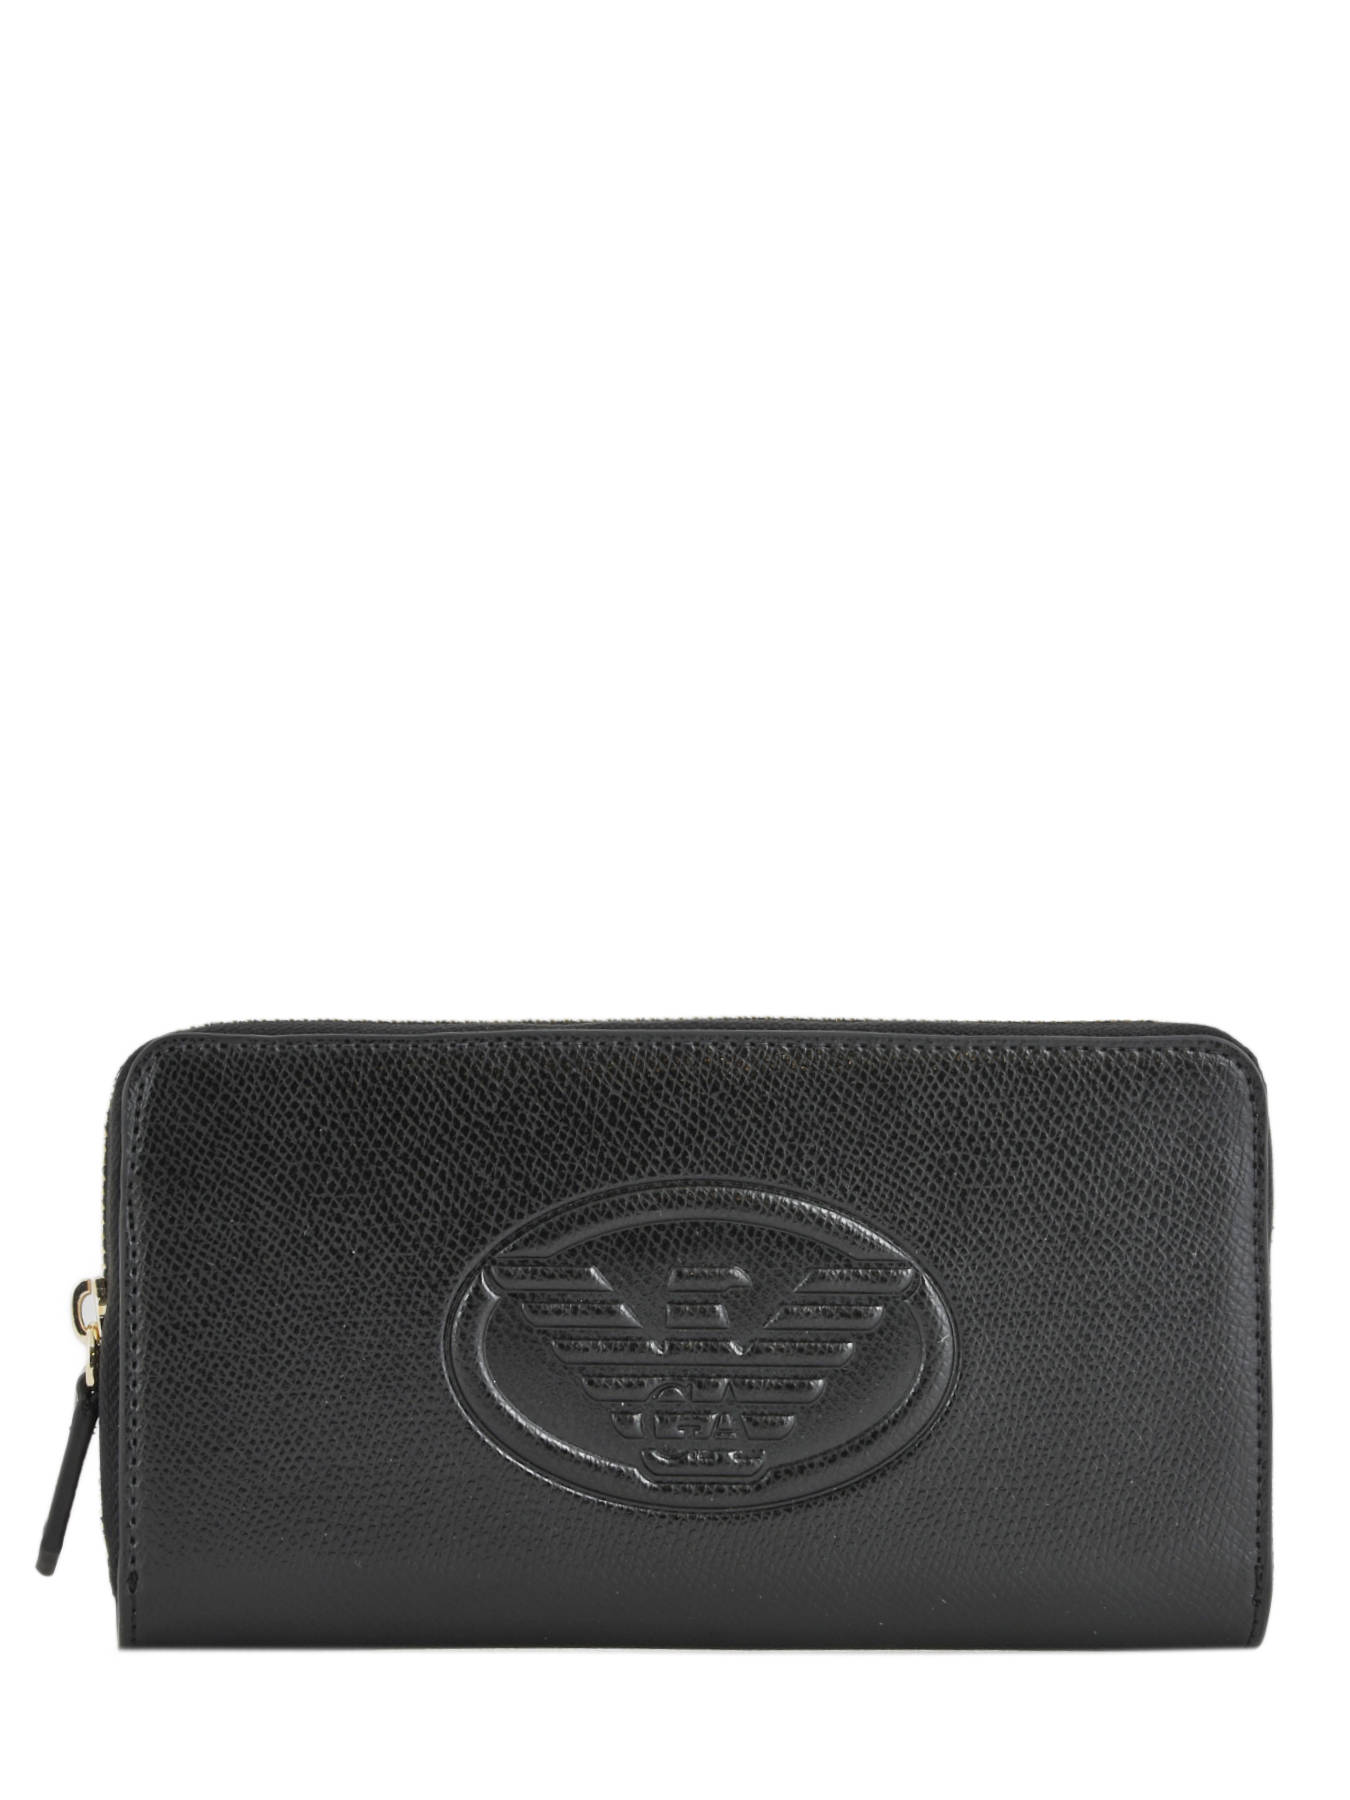 4074254c3db2 Emporio Armani Wallet YH18A.Y3H114 - free shipping available